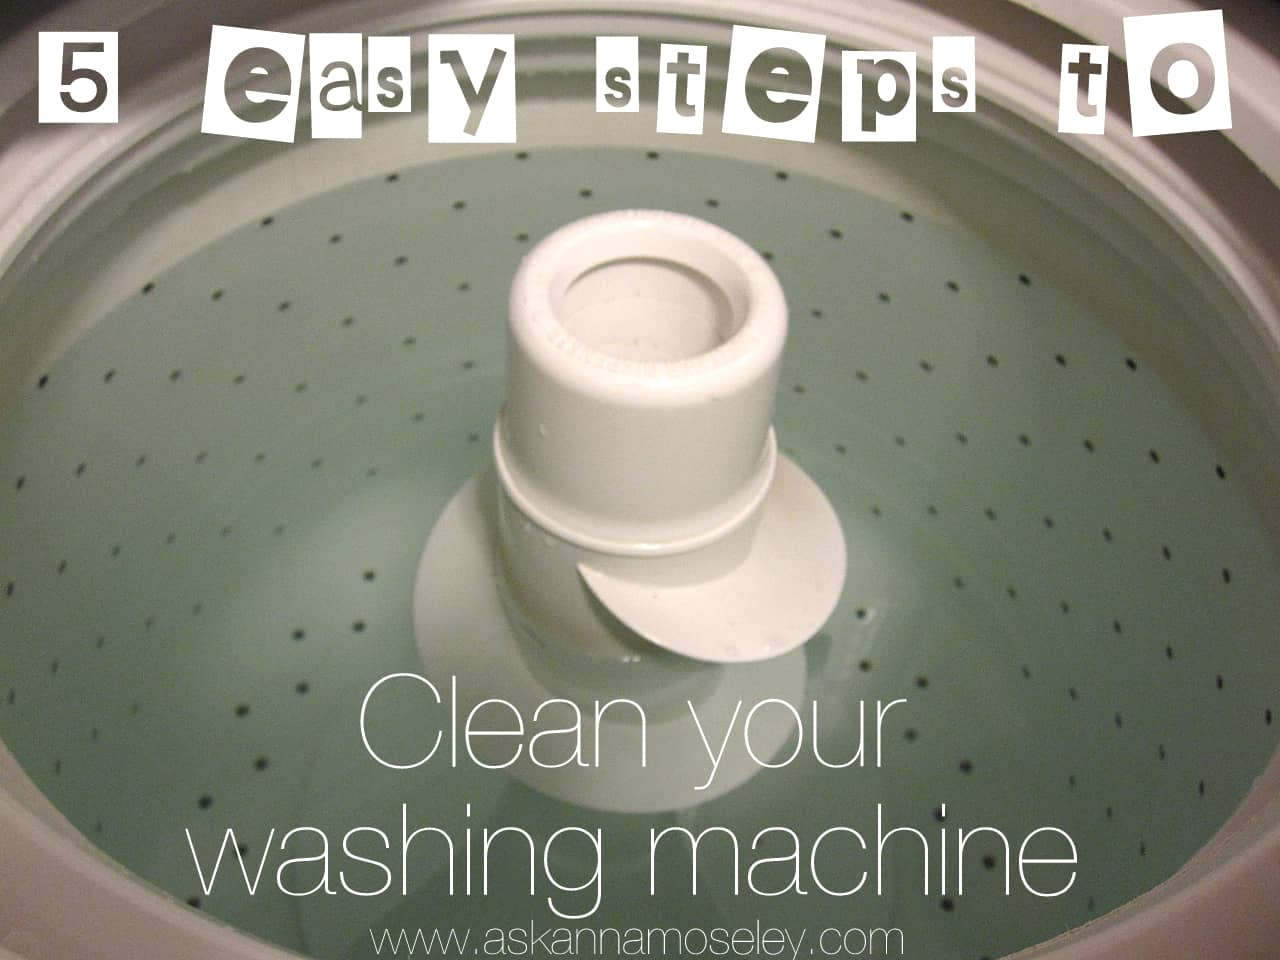 How to clean your washing machine from Ask Anna blog